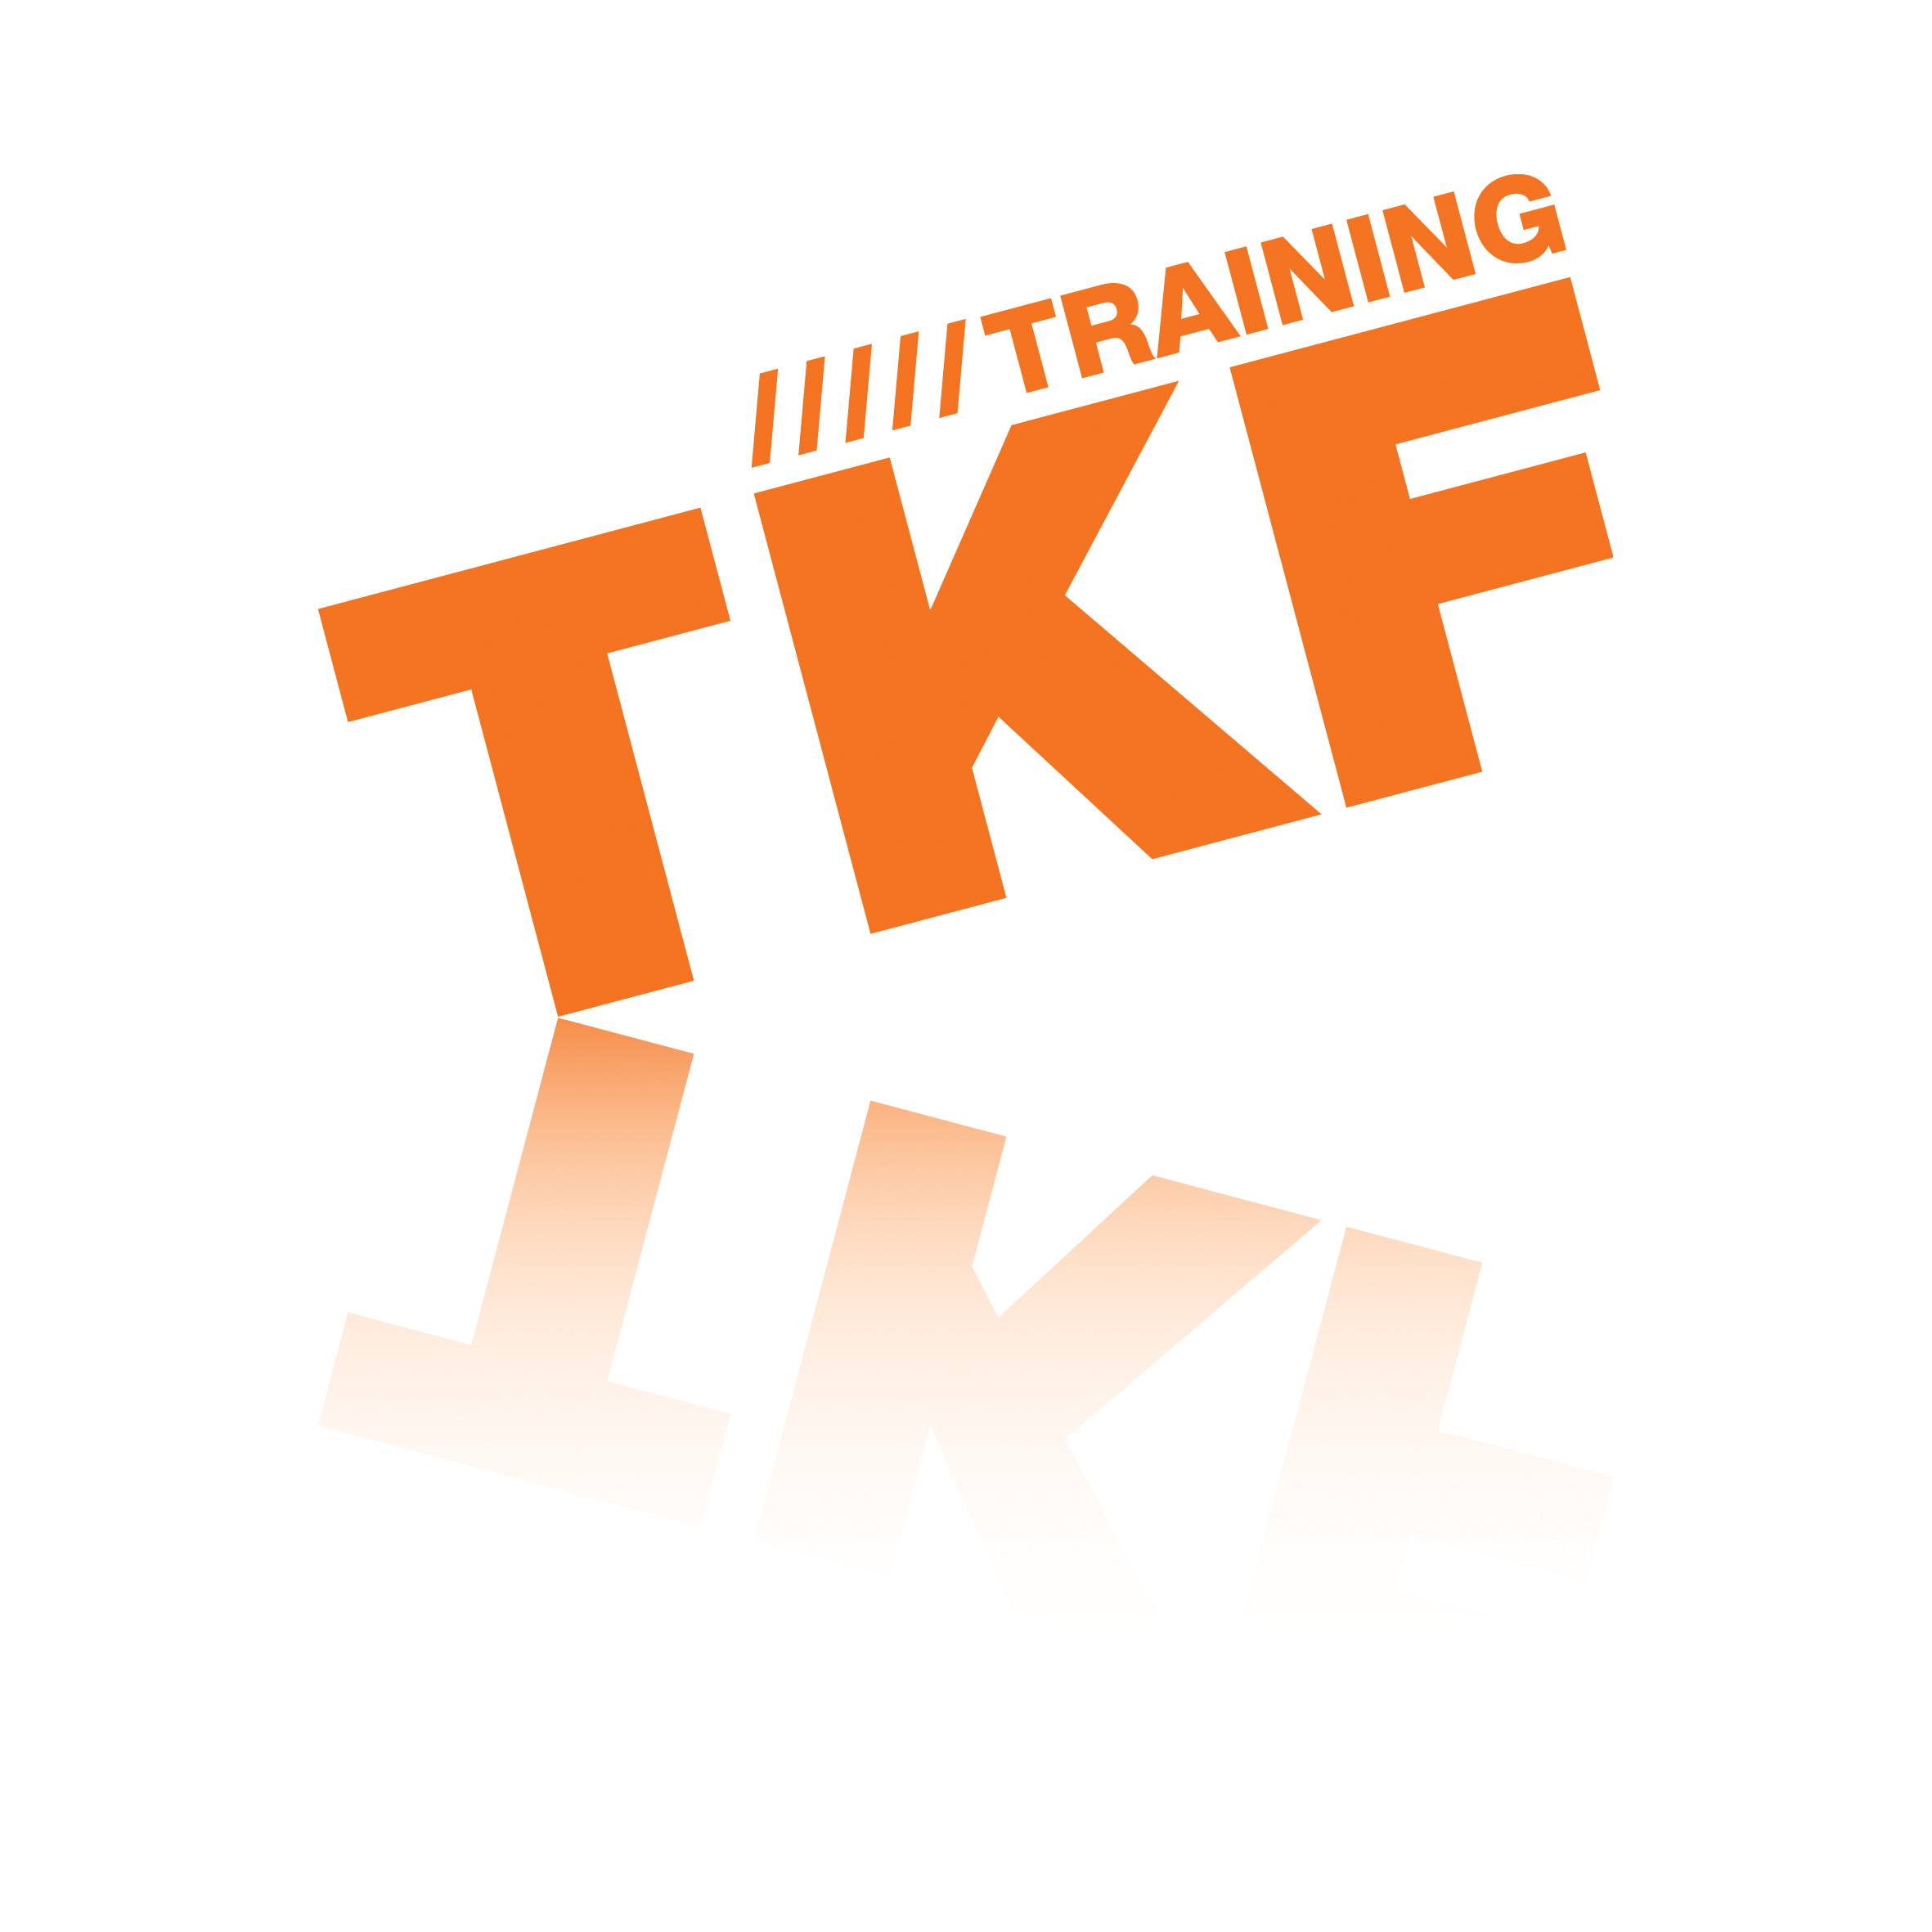 TKF - LOGO VECTOR (orange on white).jpg